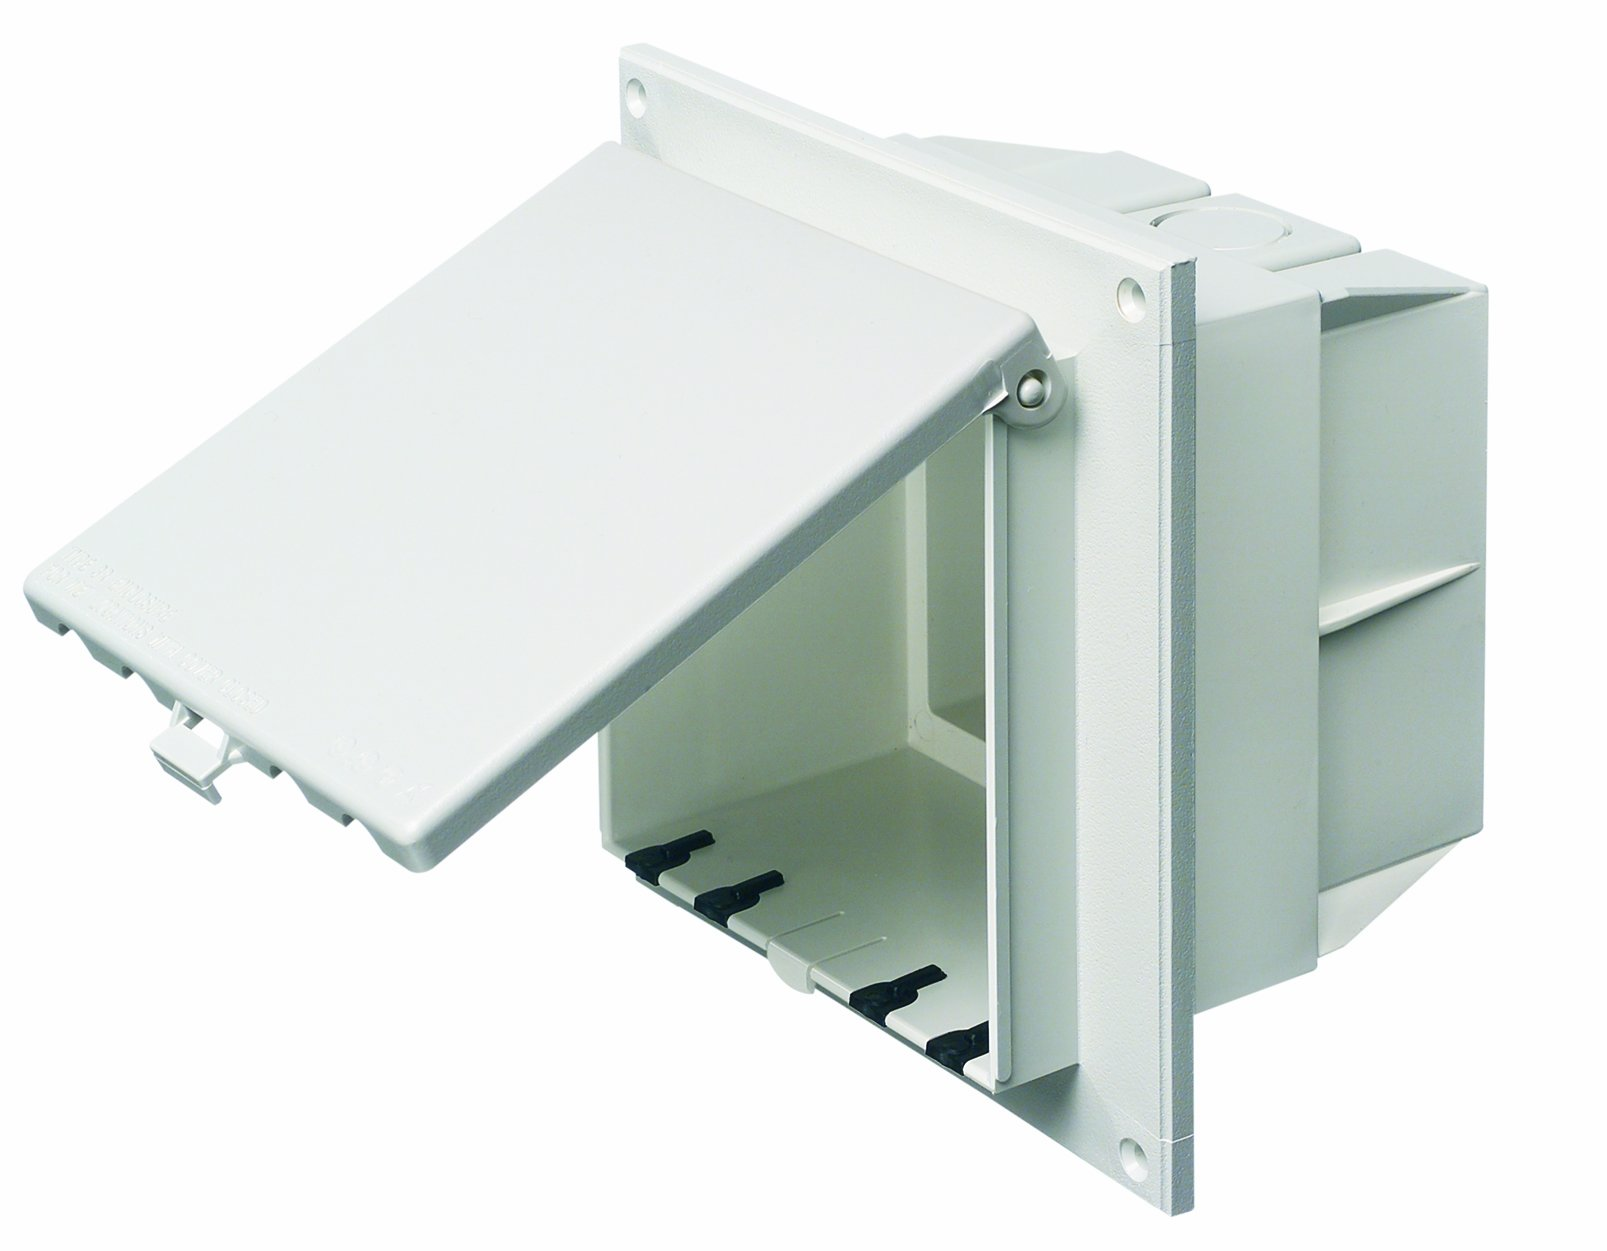 Arlington DBVR2W-1 Low Profile IN BOX Electrical Box with Weatherproof Cover for Flat Surfaces, 2-Gang, Vertical, White